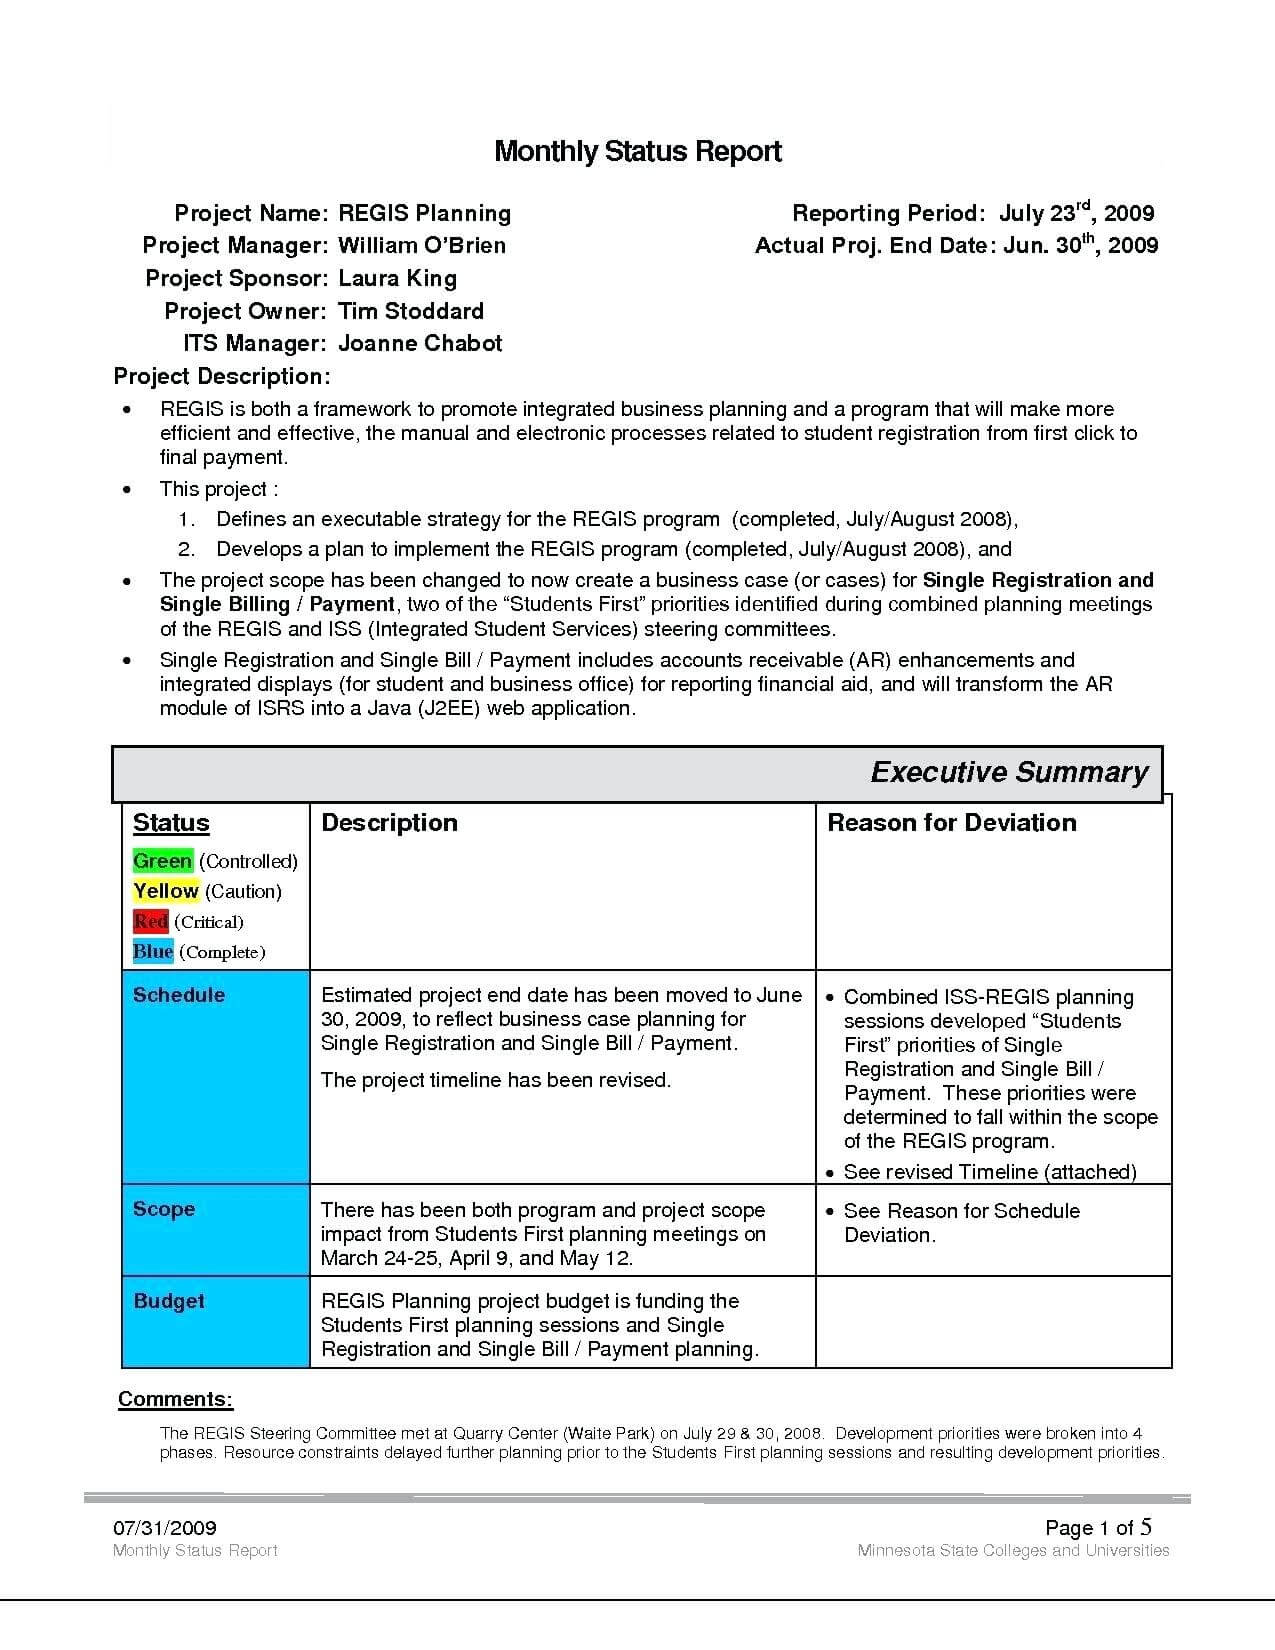 Project Management Status Report Template Reports Format with Deviation Report Template